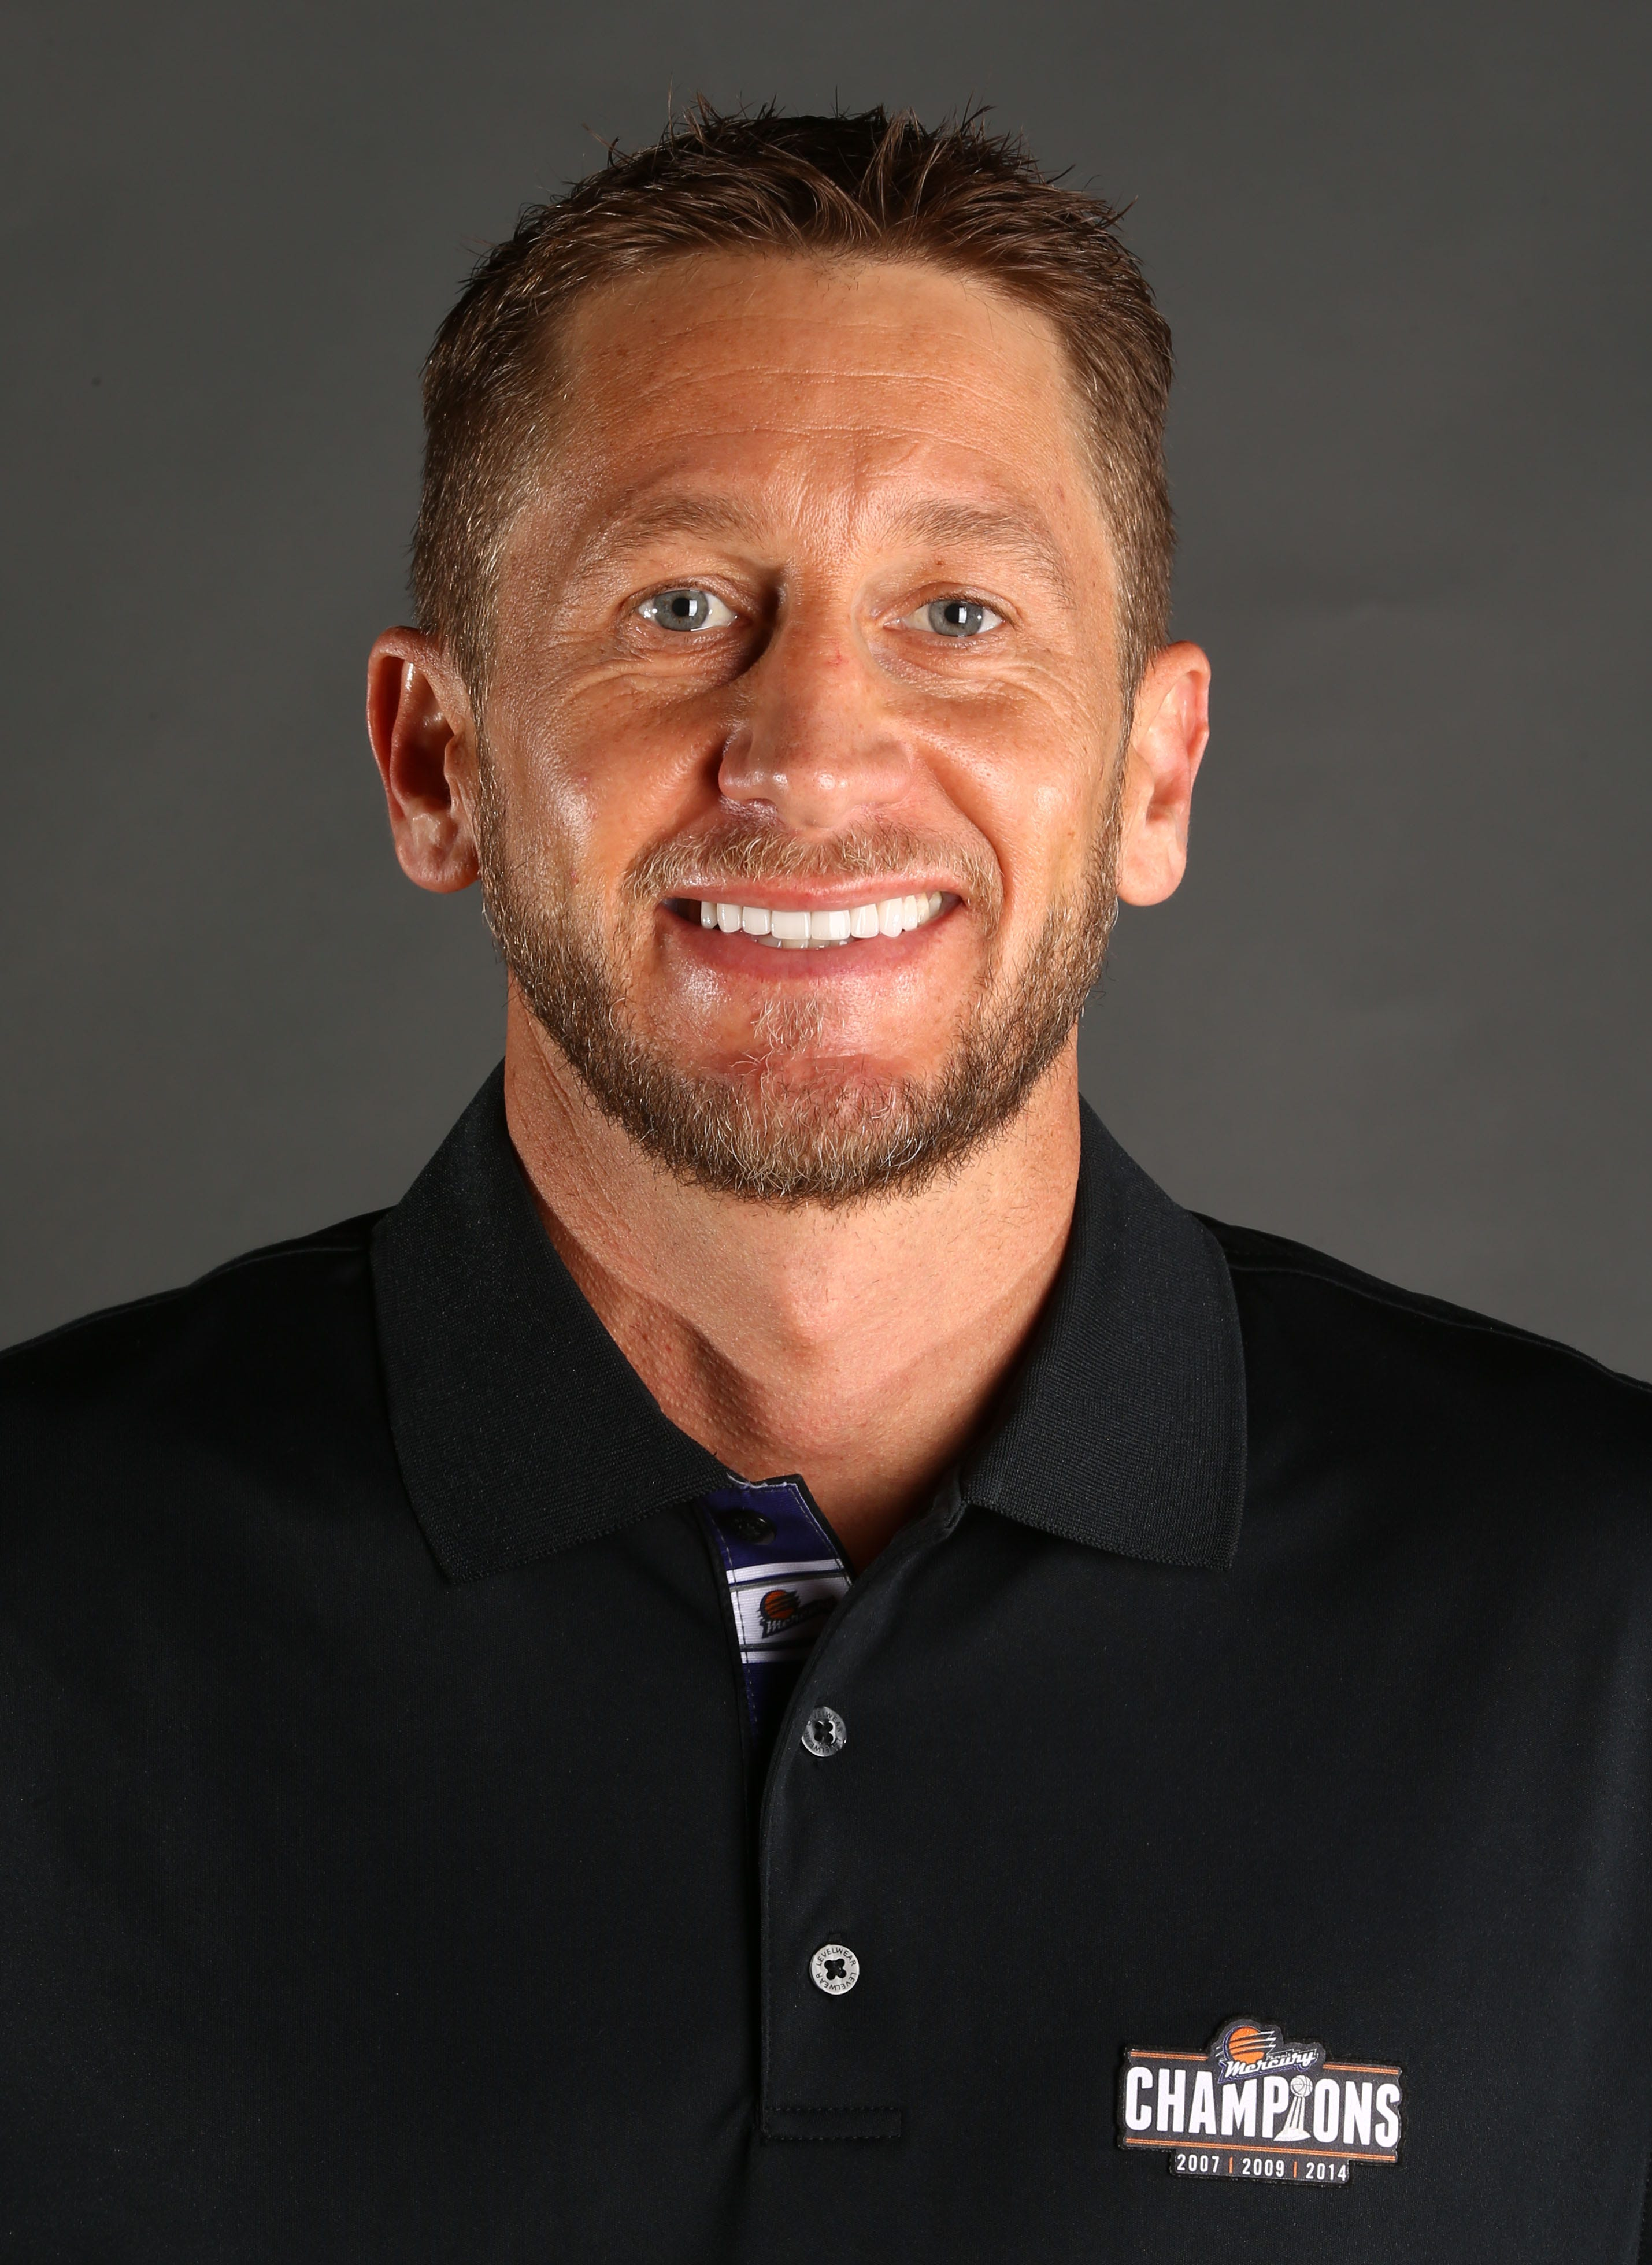 Phoenix Mercury assistant coach Todd Troxel charged with assault, disorderly habits